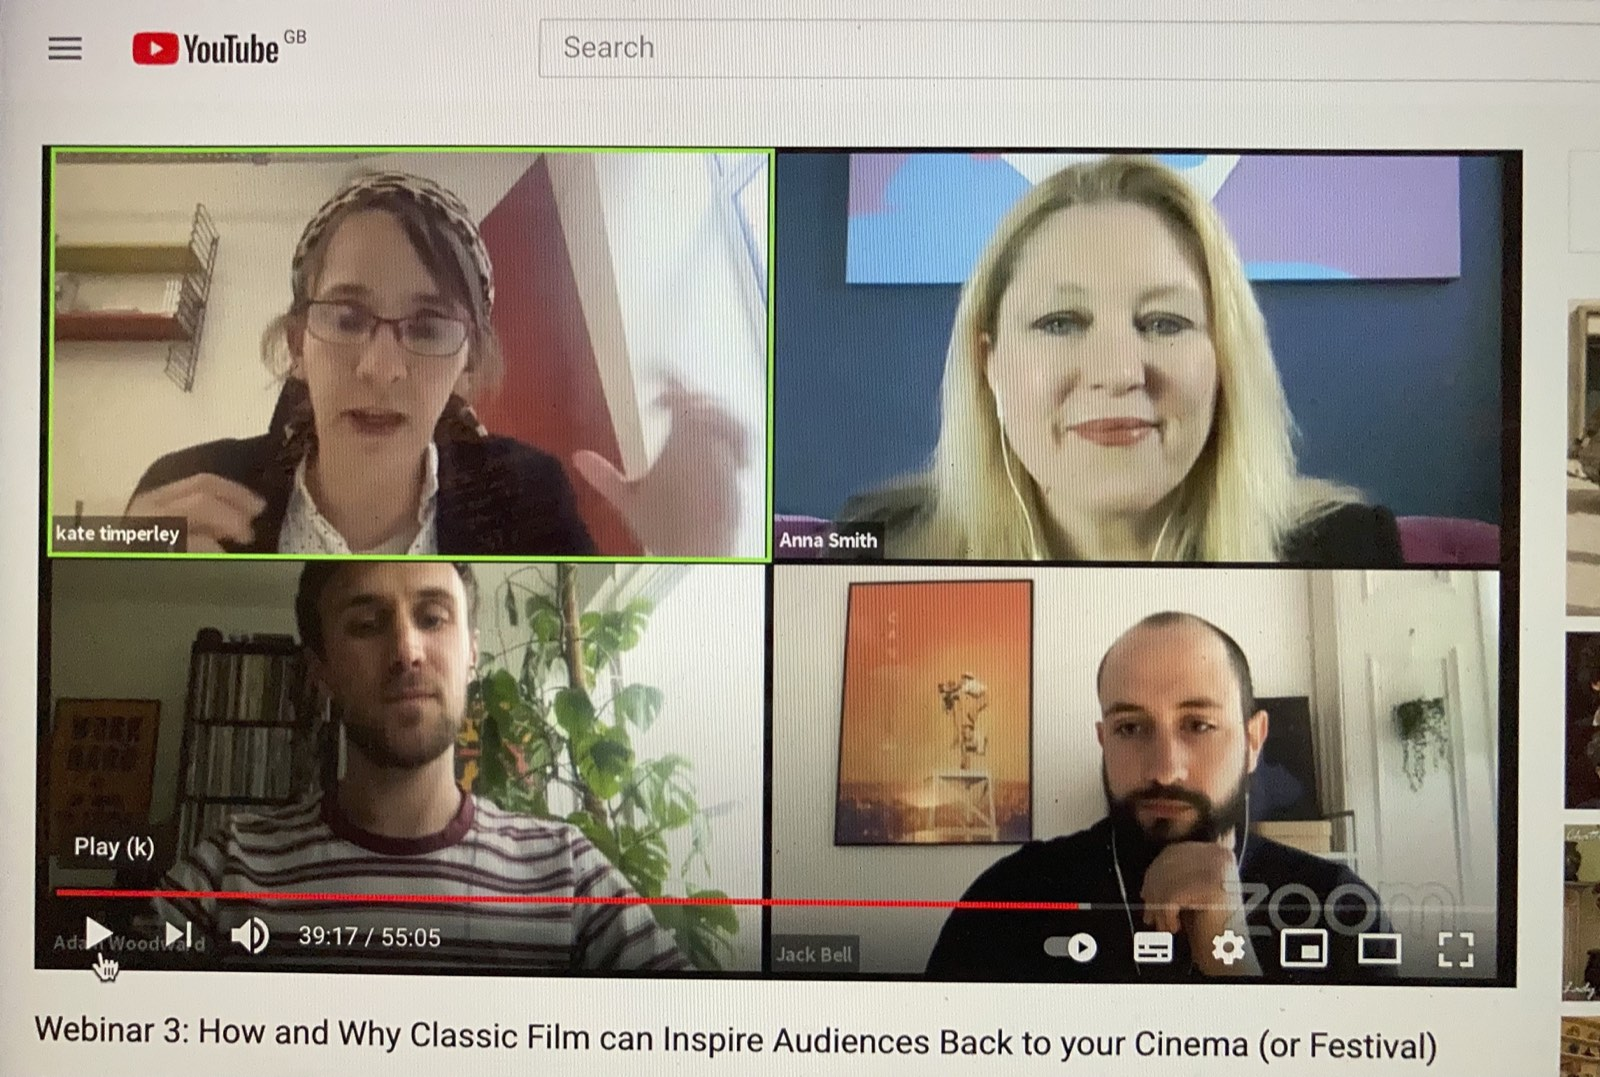 Watch Now: How and Why Classic Film can Inspire Audiences Back to your Cinema (or Festival)